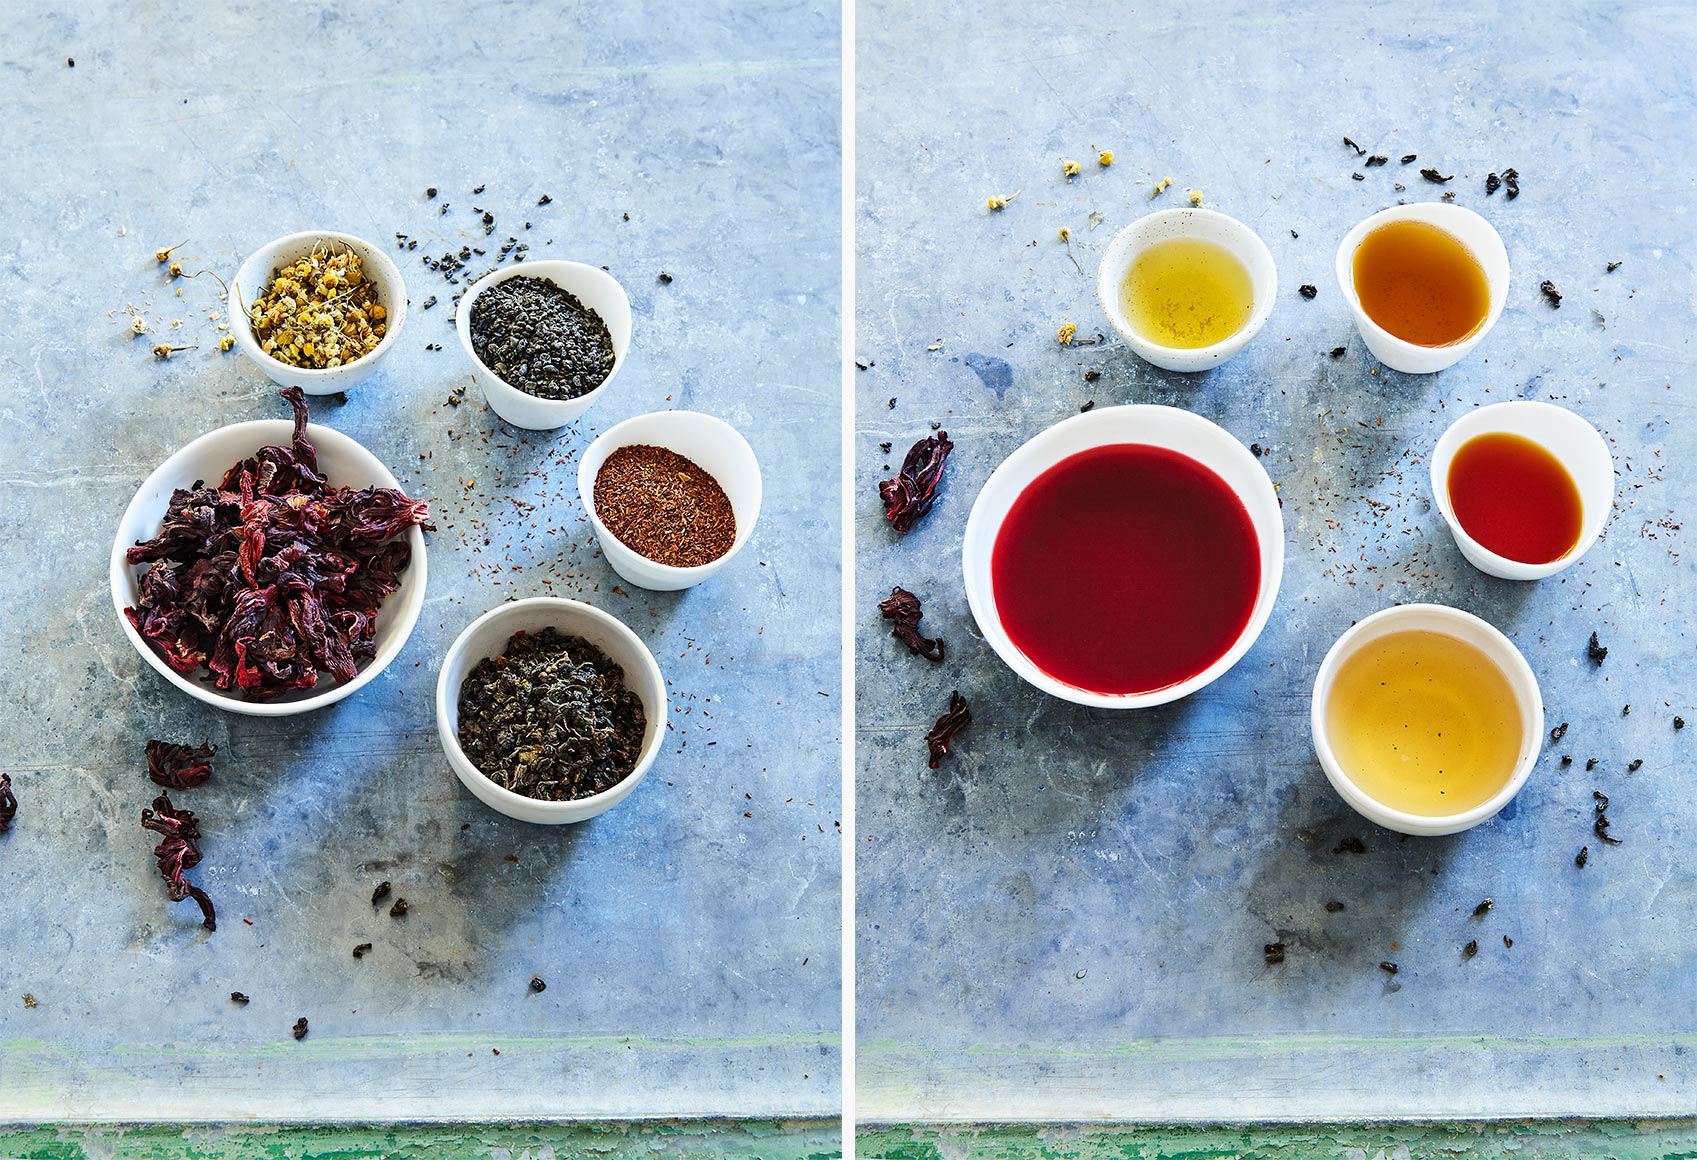 Teas-before-and-after4